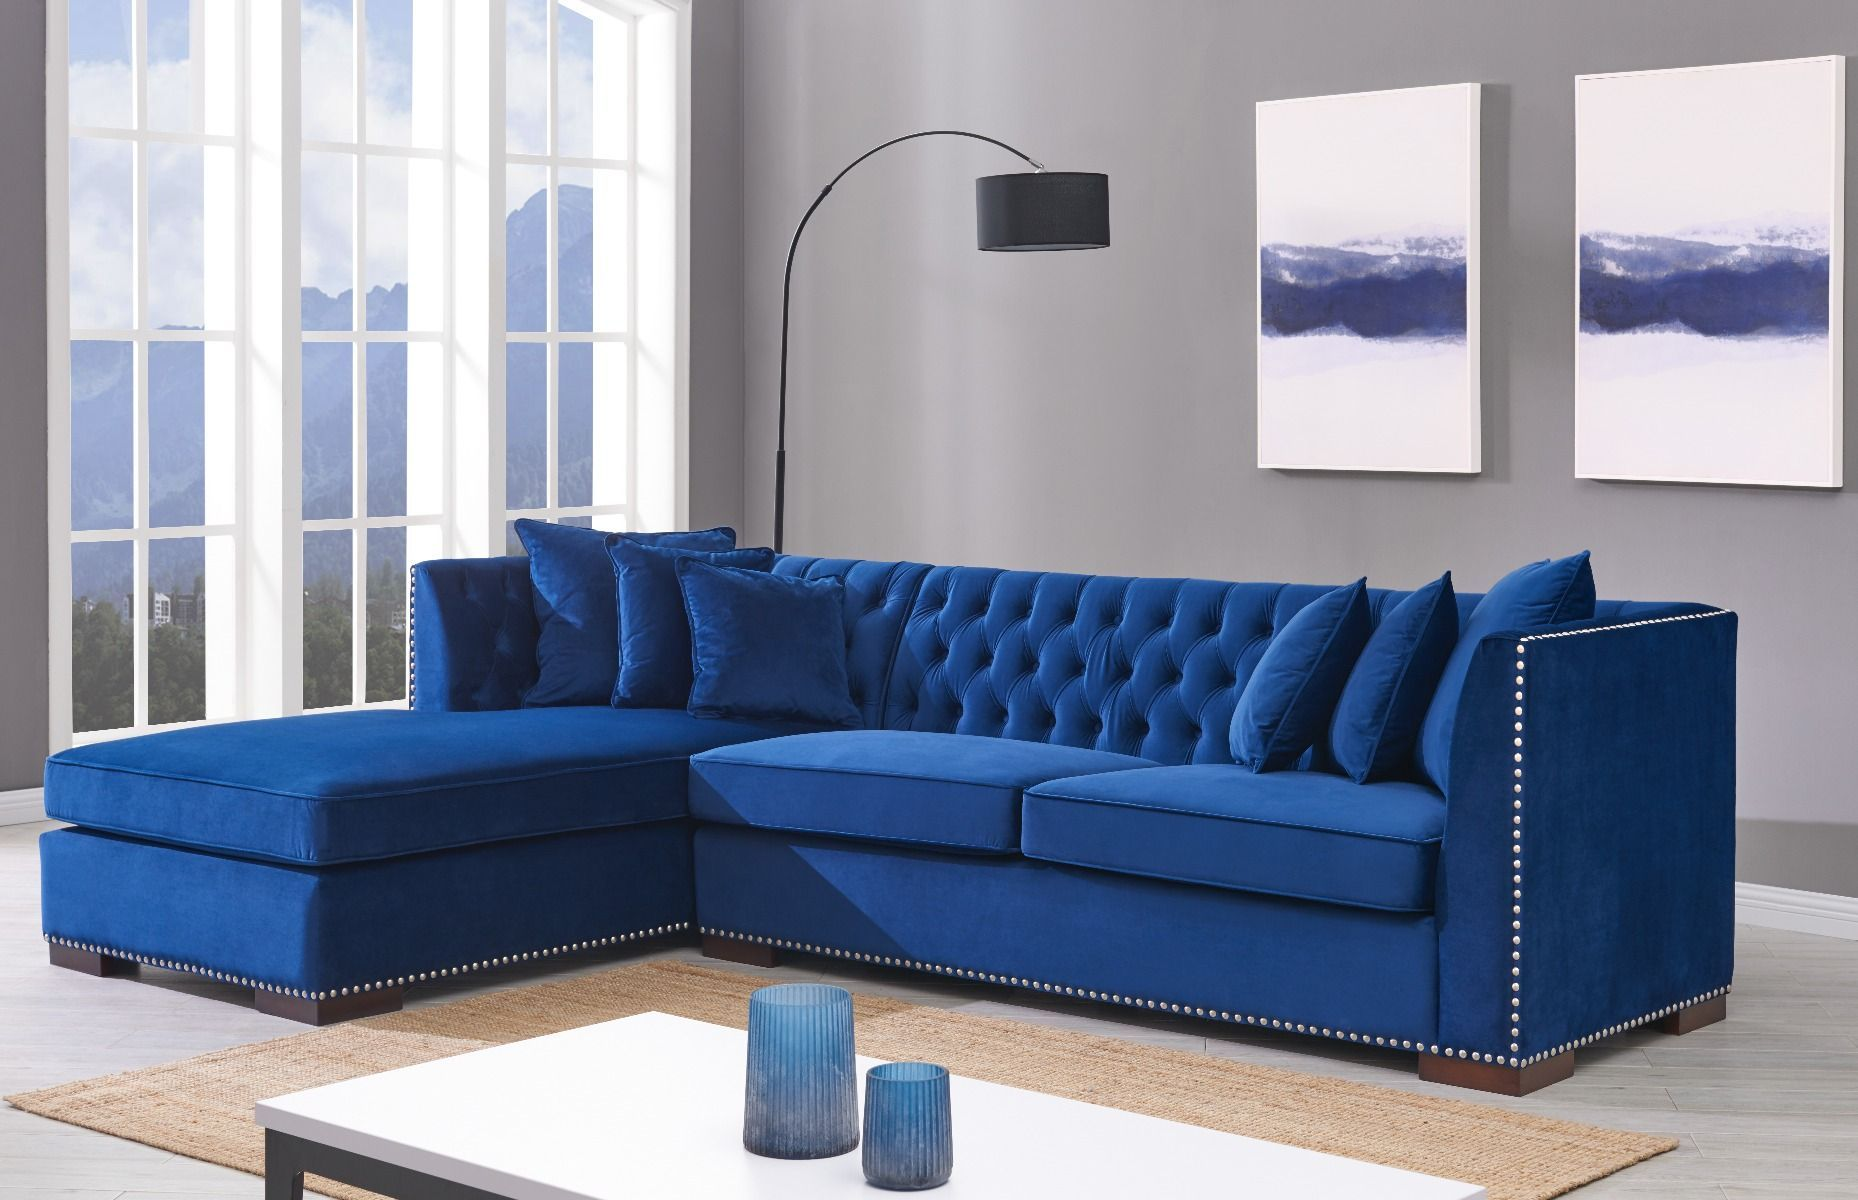 Royal Blue Velvet Corner Suite Hanaley Interiors Royal Blue Sofa Blue Sofas Living Room Blue Corner Sofas